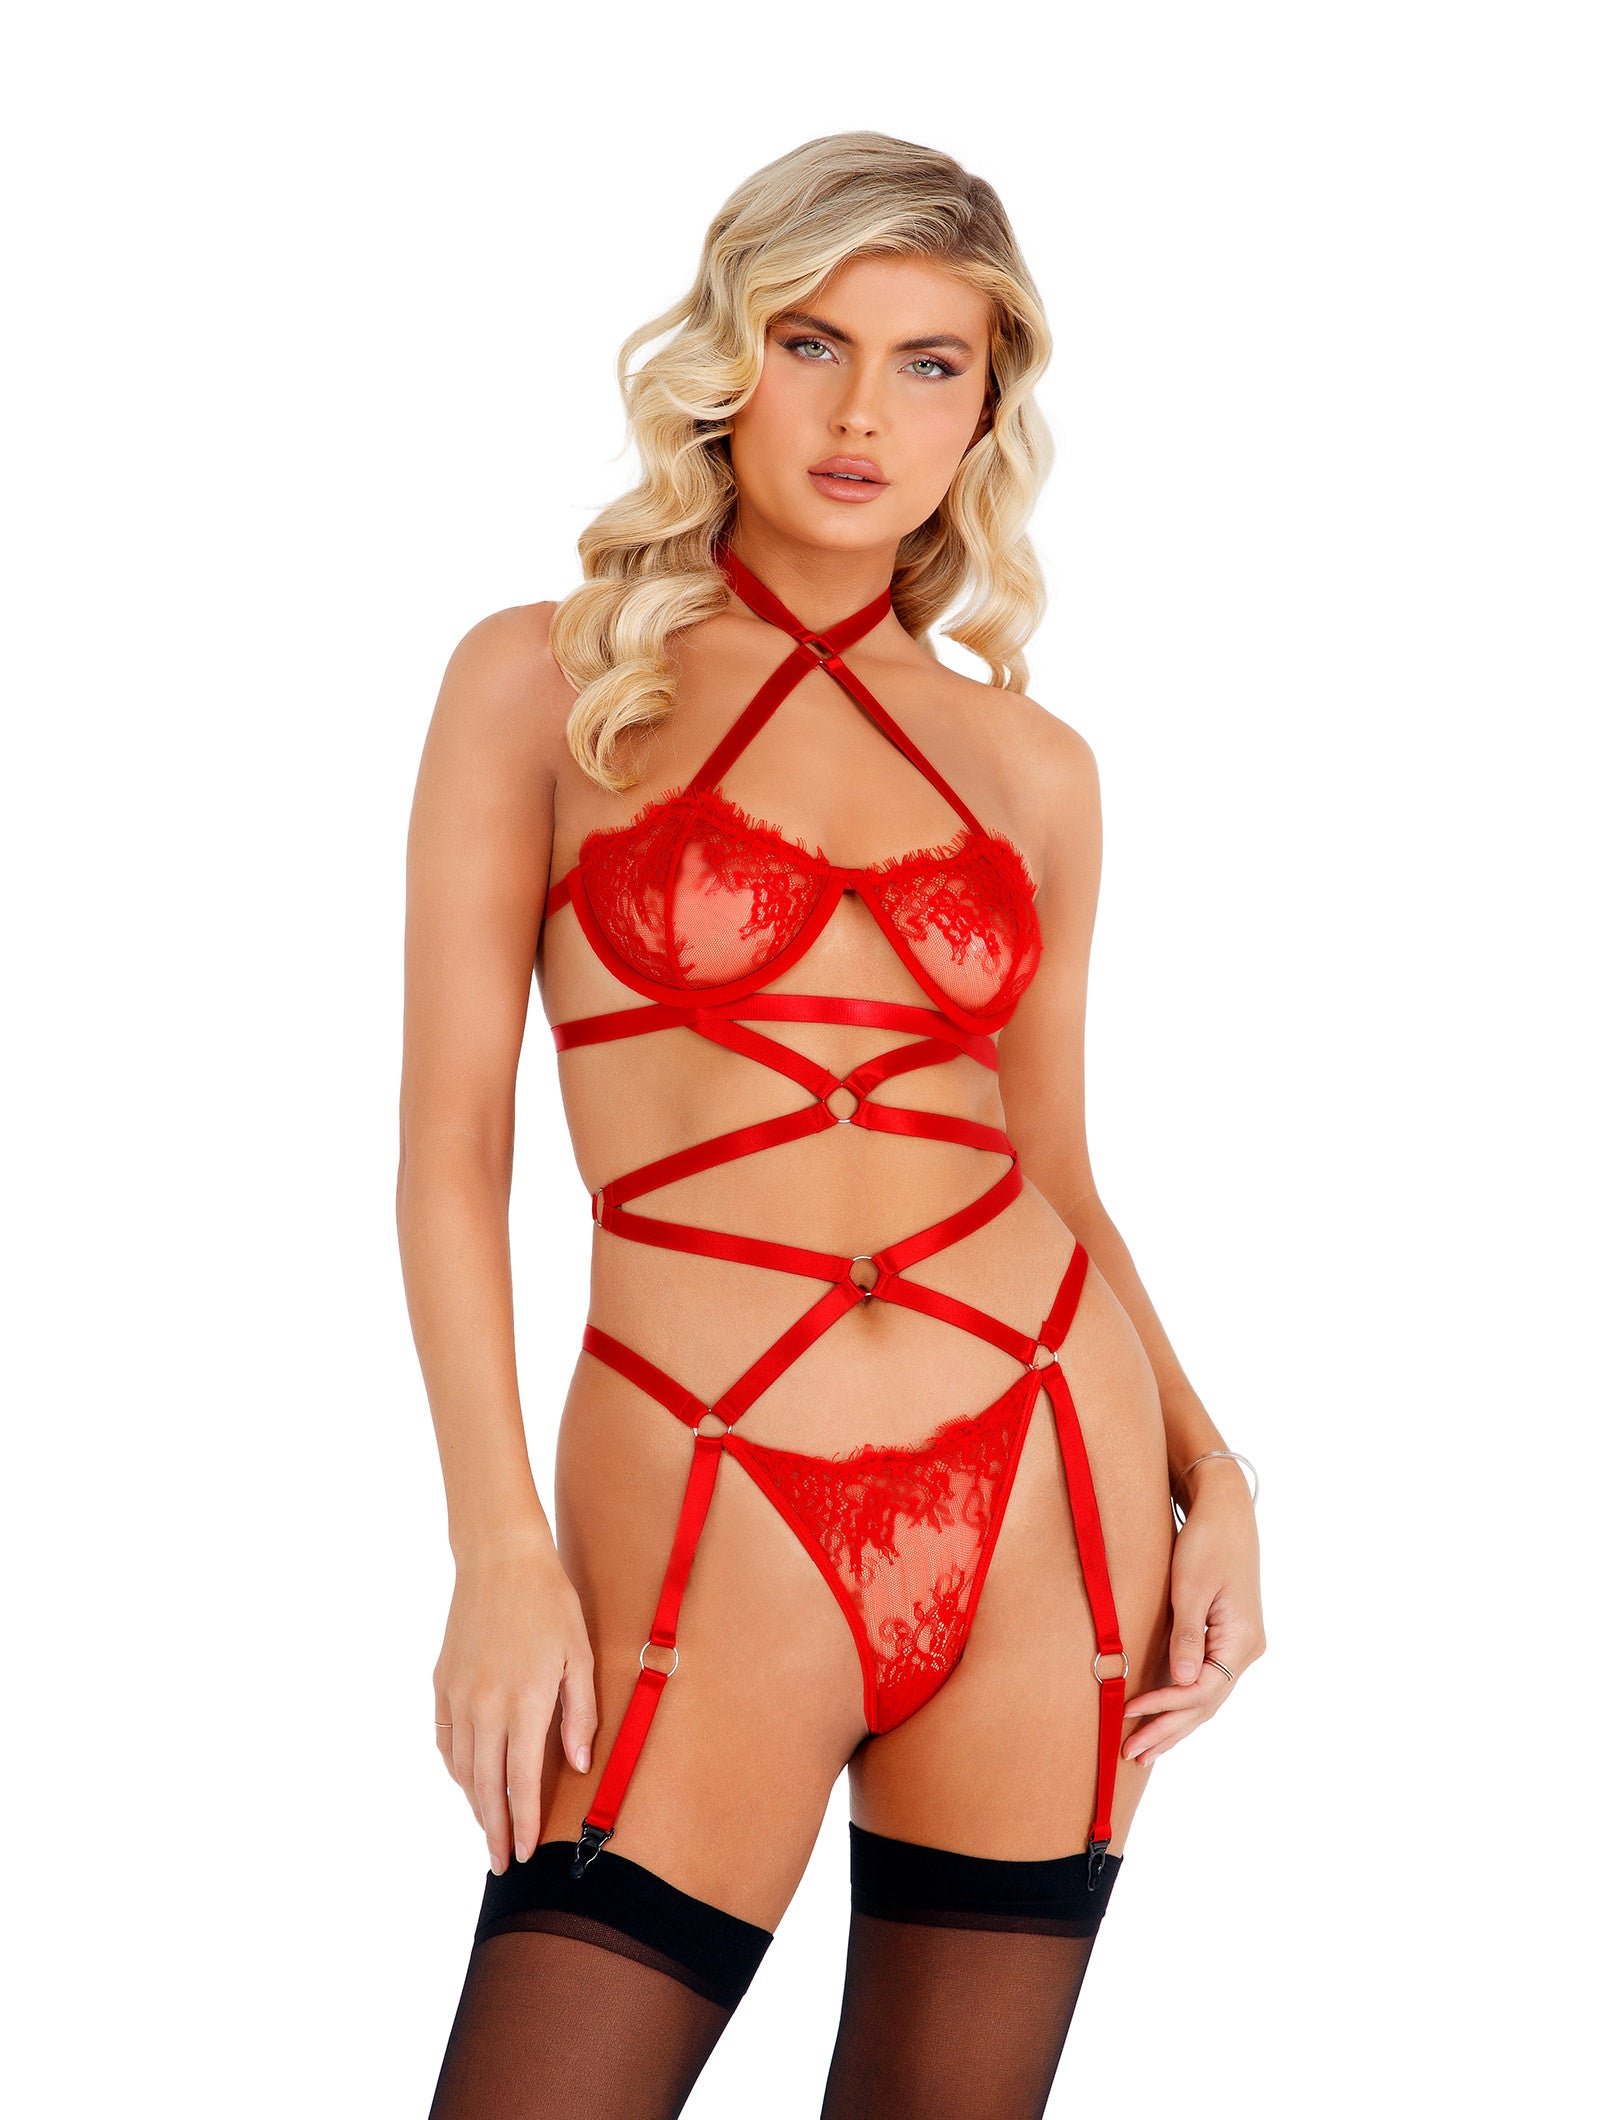 LI421 - Lacey Criss-Cross Underwired Teddy with Garters